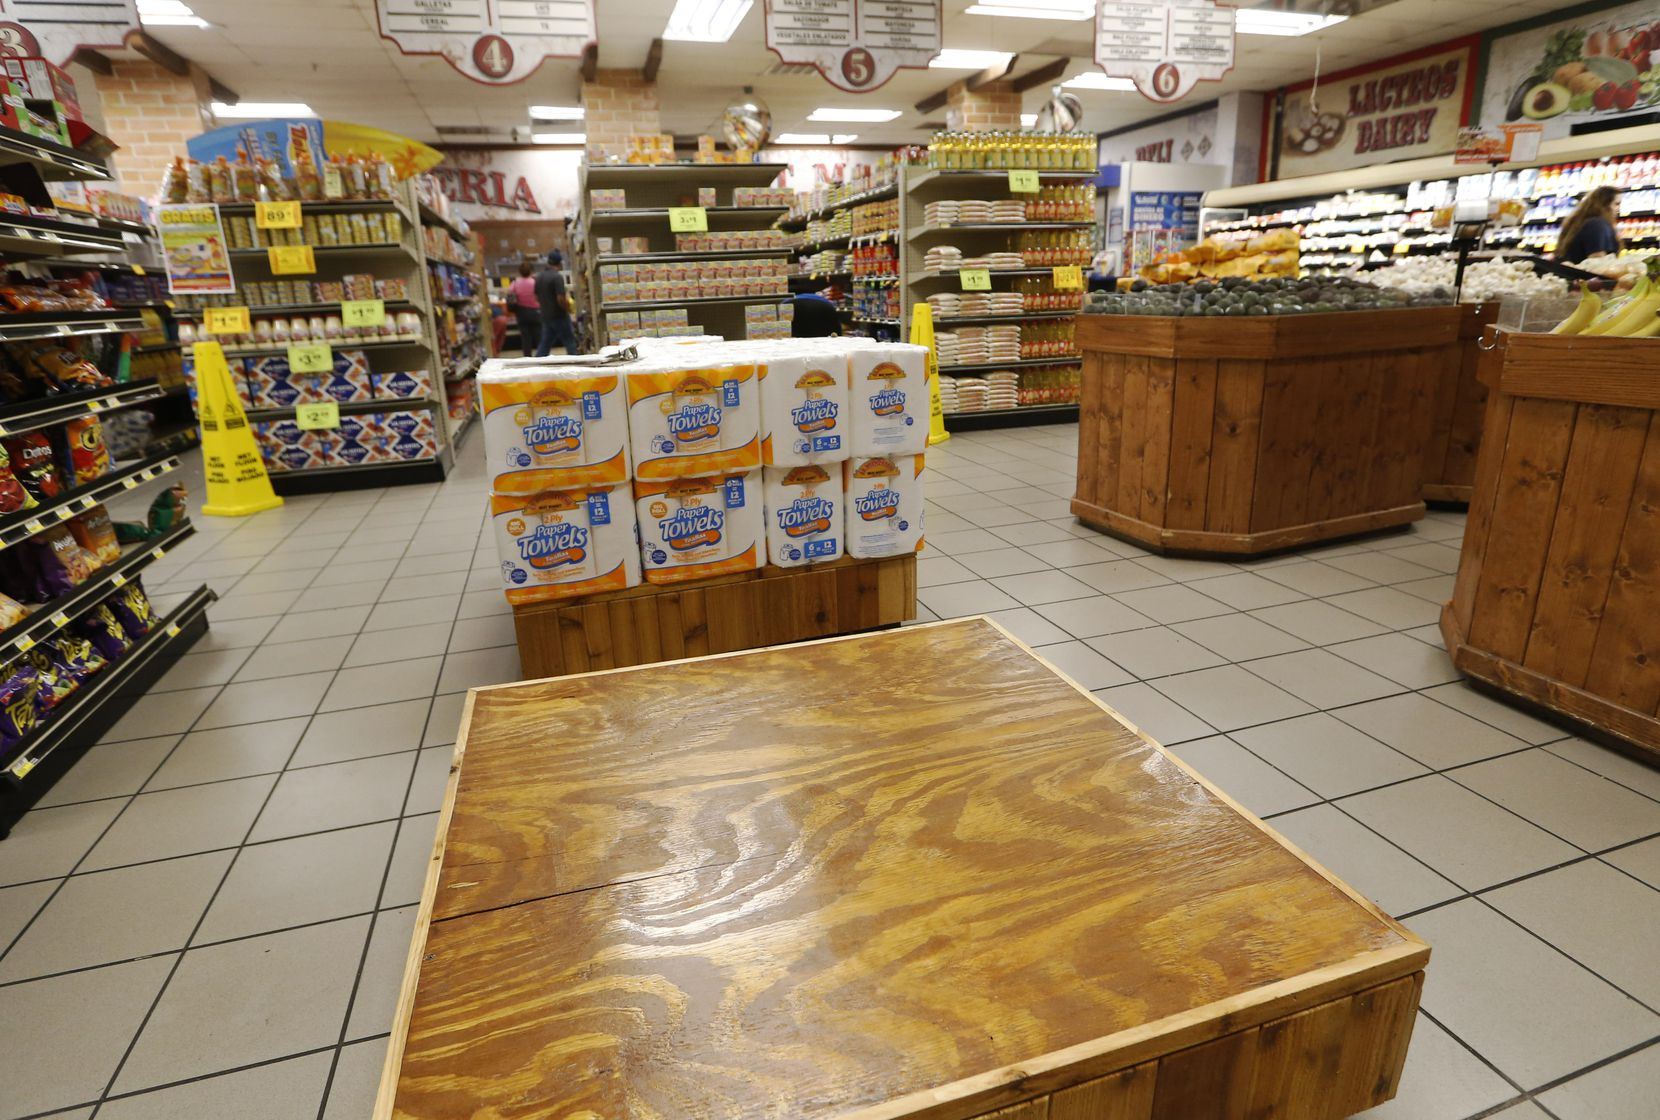 Where bottled water once sat in plentiful supply, only a bare countertop remained at La Michoacana Meat Market near the Bishop Arts District in north Oak Cliff on Saturday.